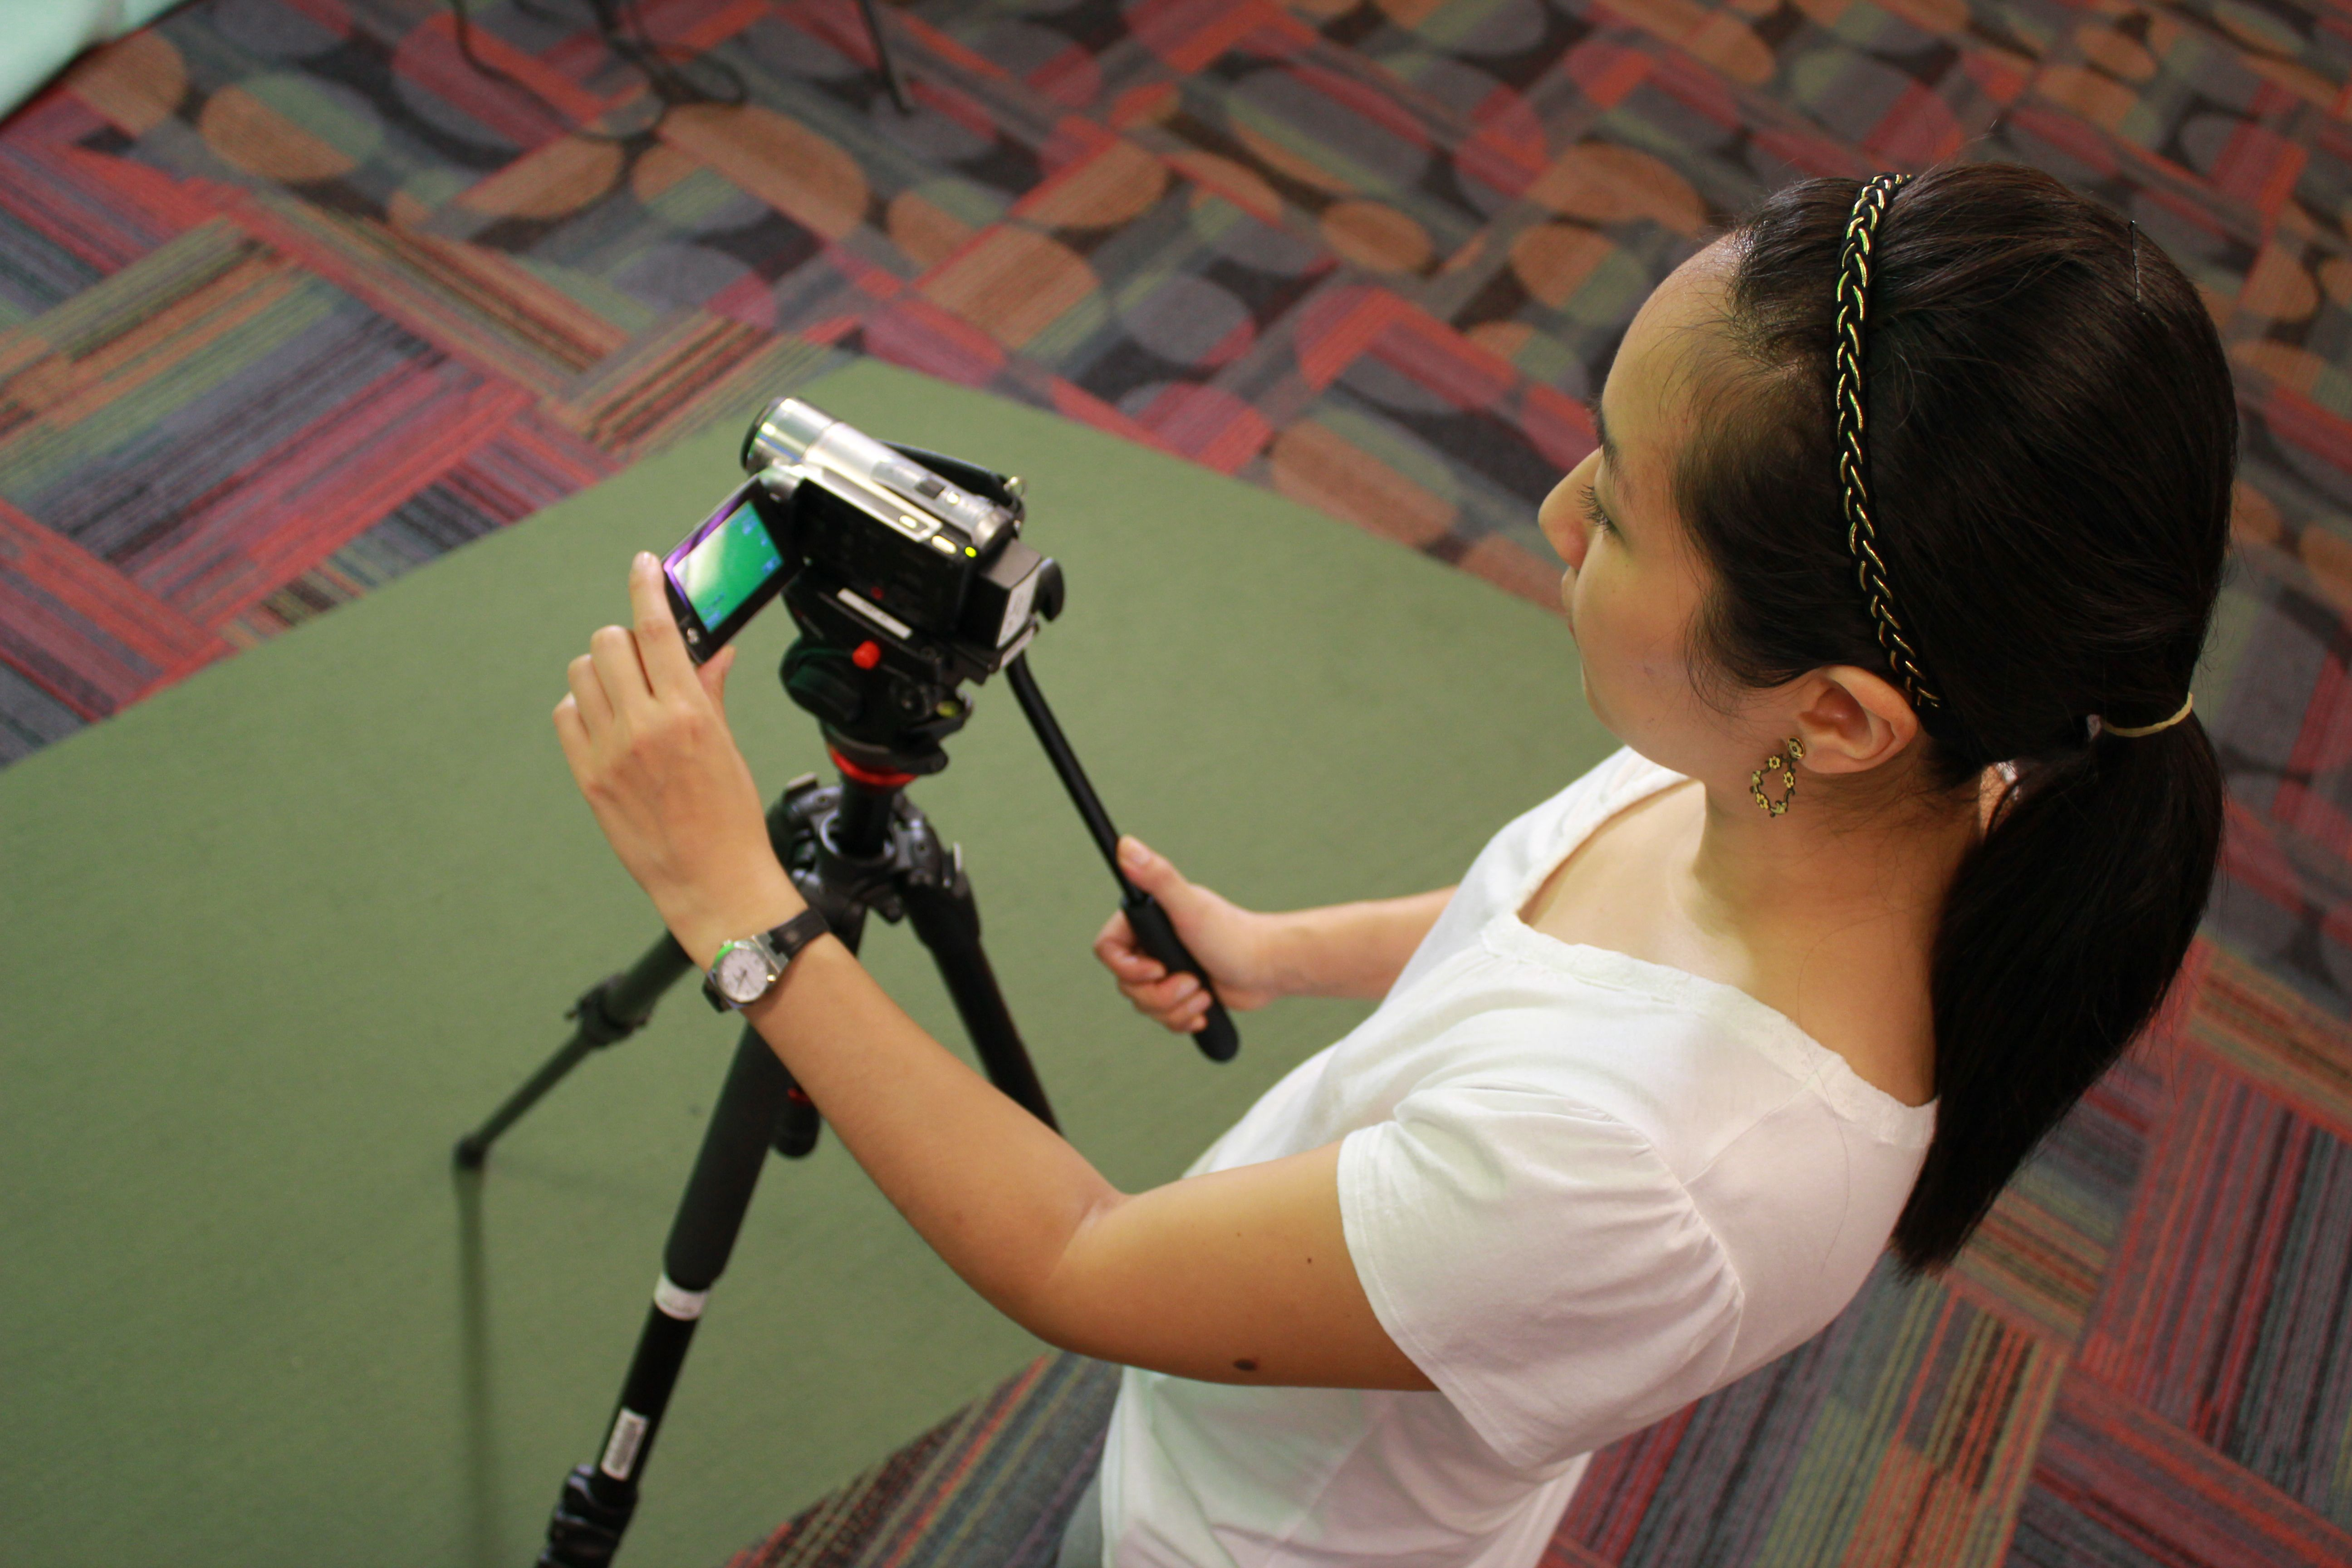 Student filming